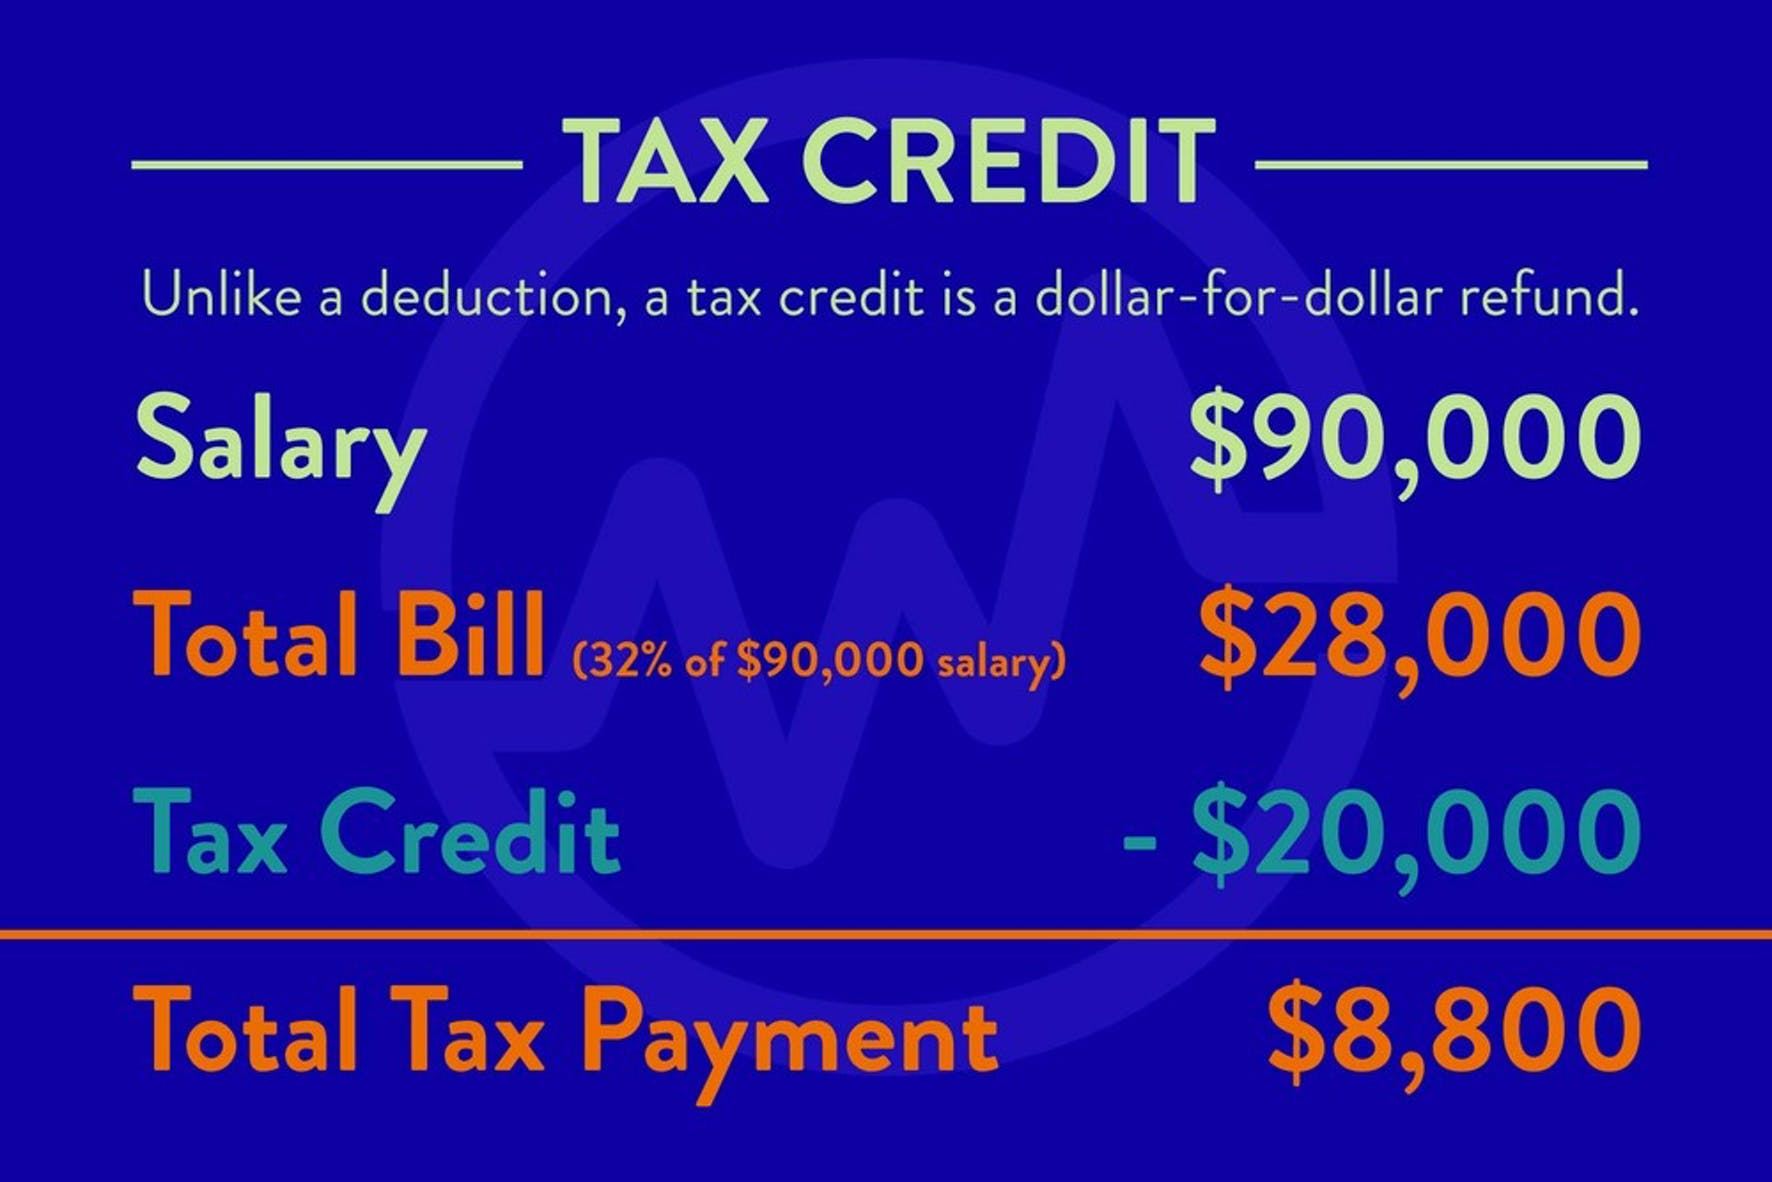 Explaining that a tax credit is a dollor for dollar refund when discussing how do tax write-offs work